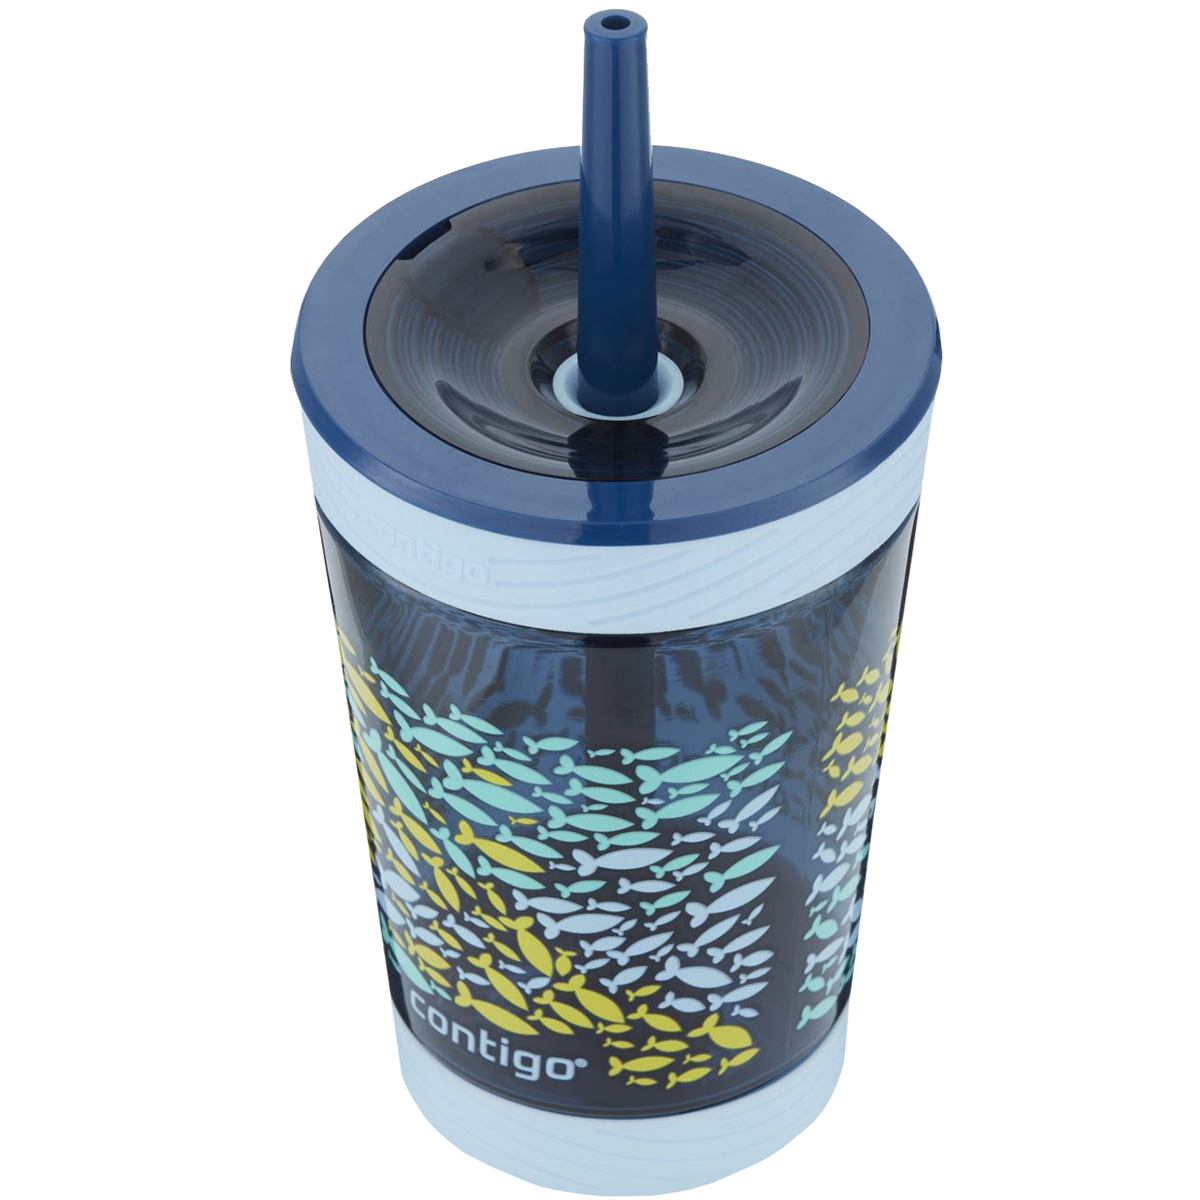 Contigo-14-oz-Kid-039-s-Spill-Proof-Sippy-Cup-Tumbler-with-Straw thumbnail 7